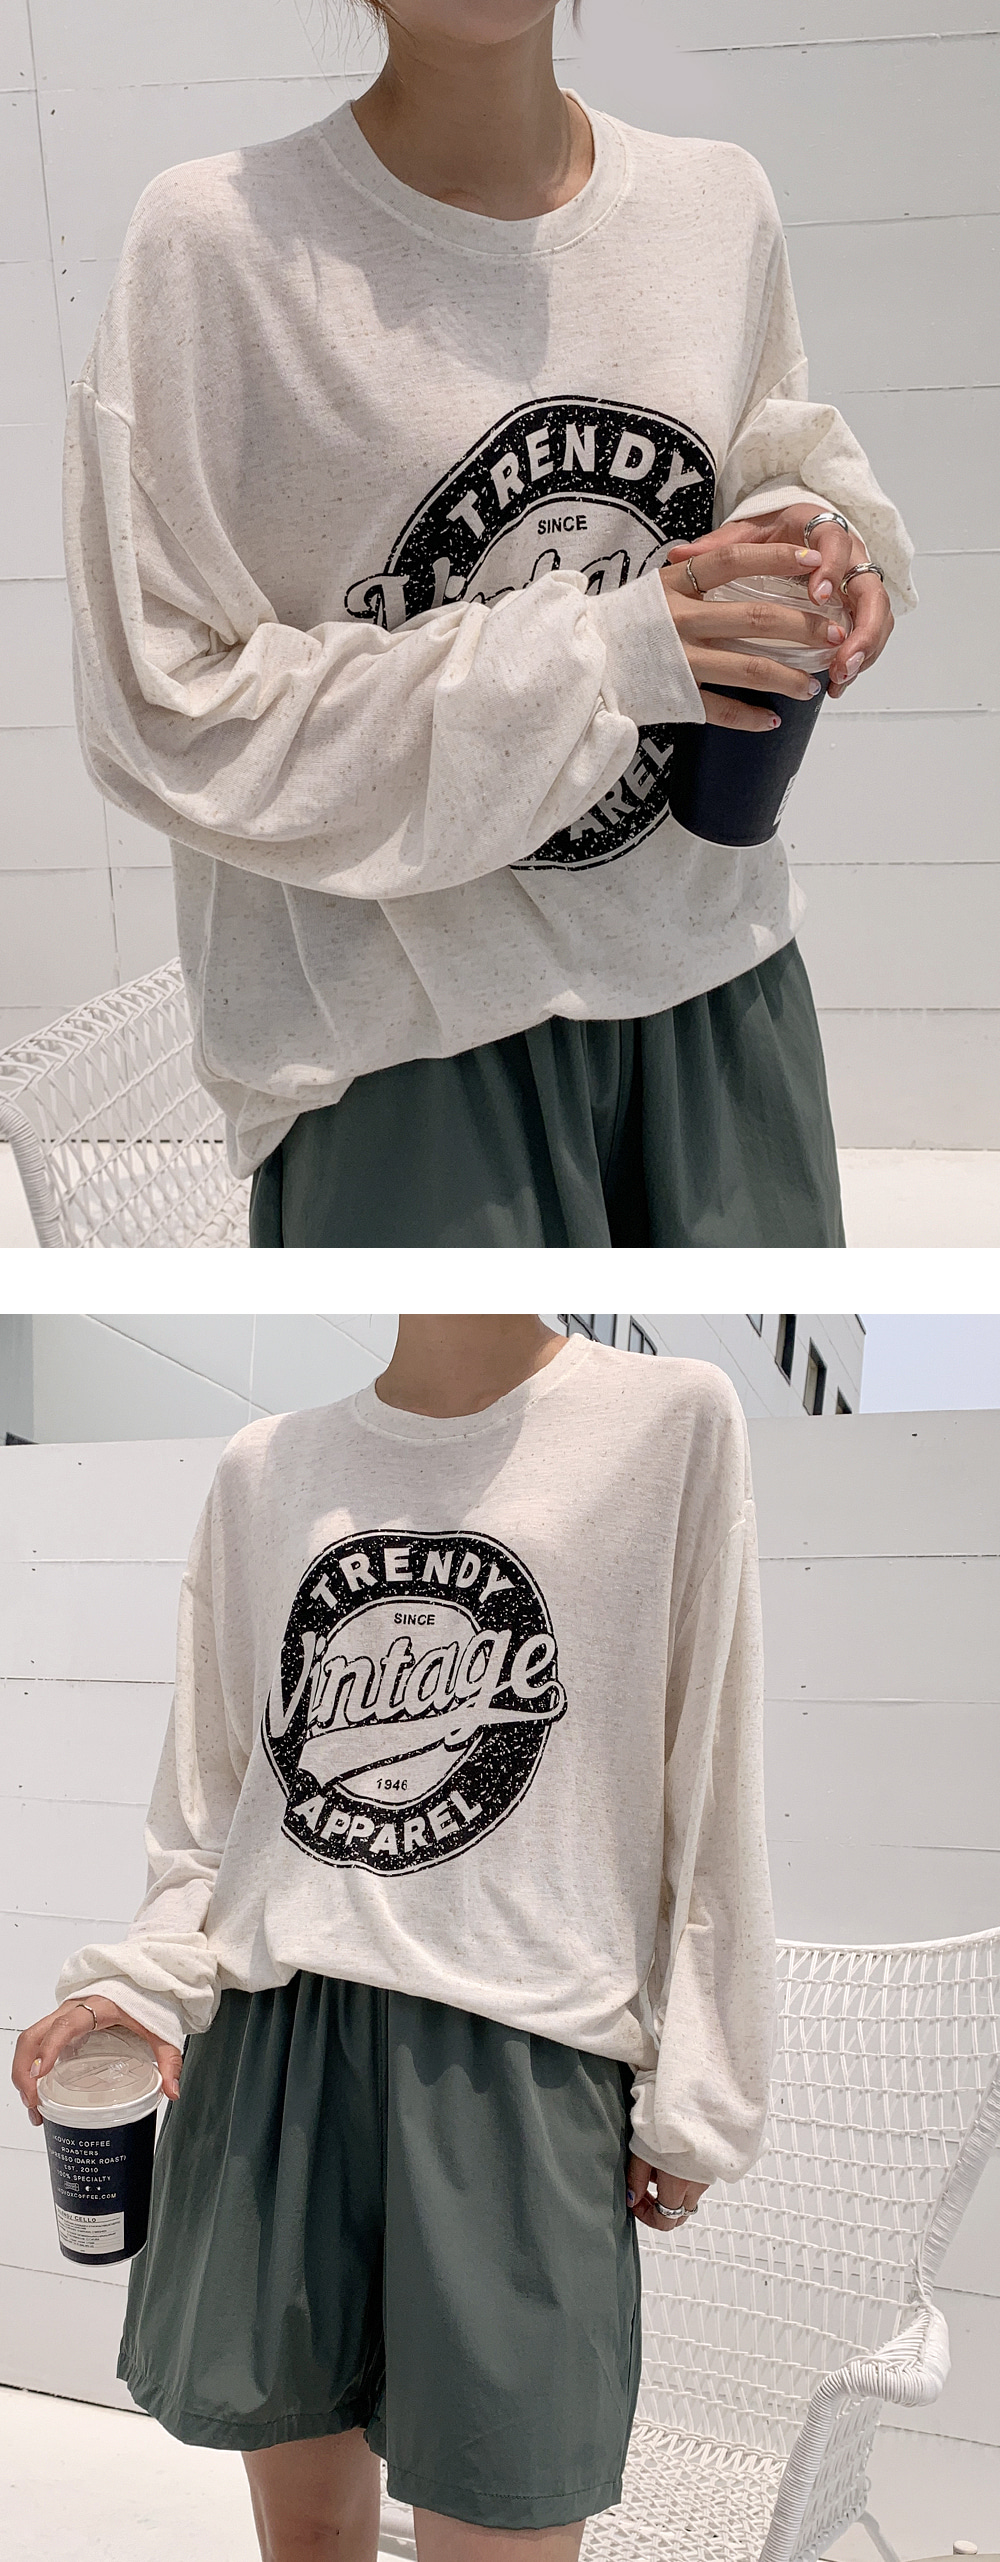 trend rouge t-shirt